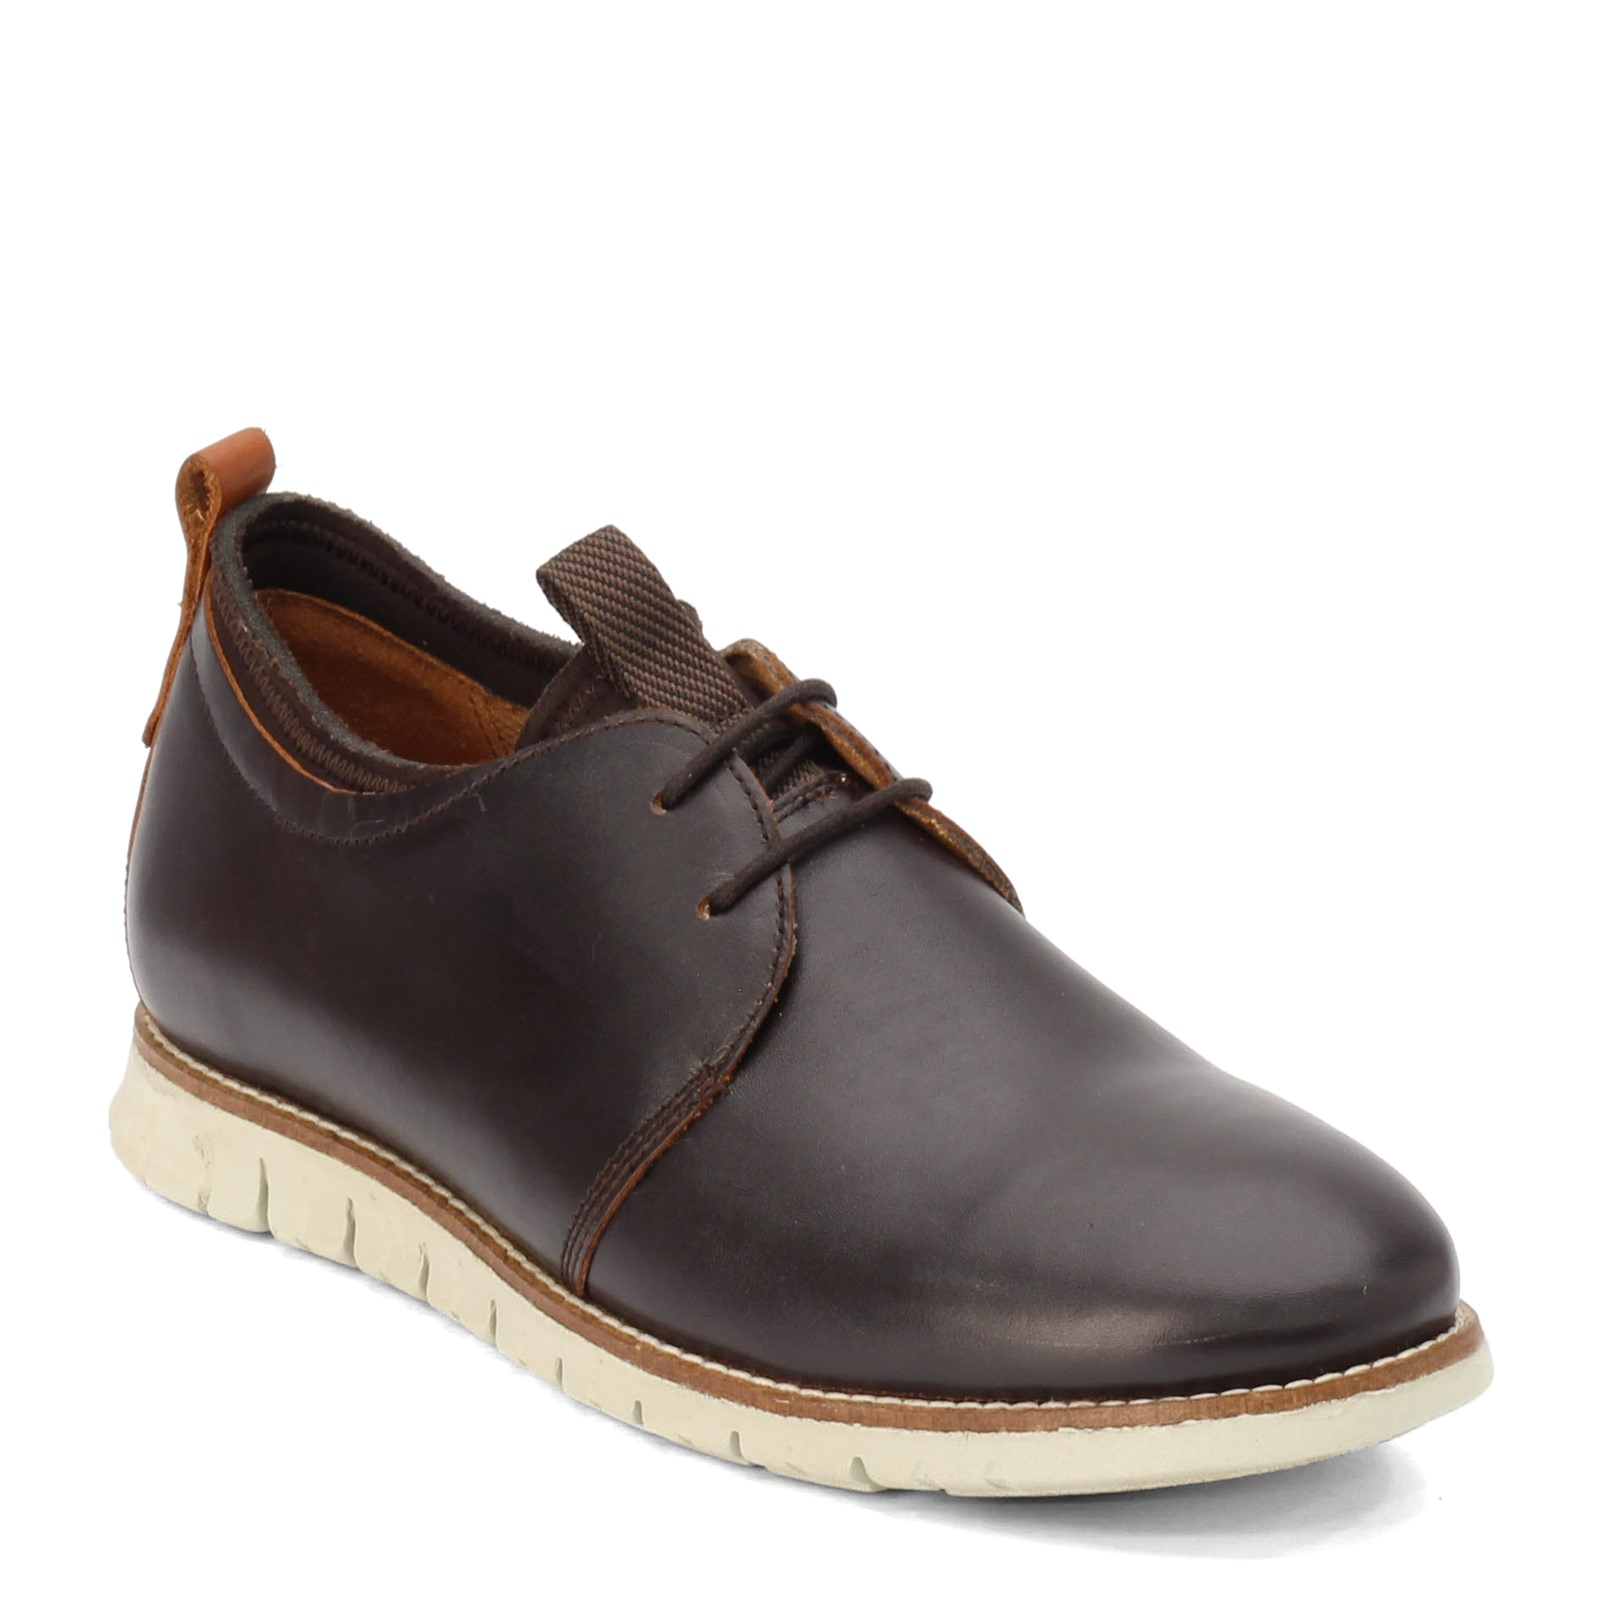 Men's Hush Puppies, Colby Oxford